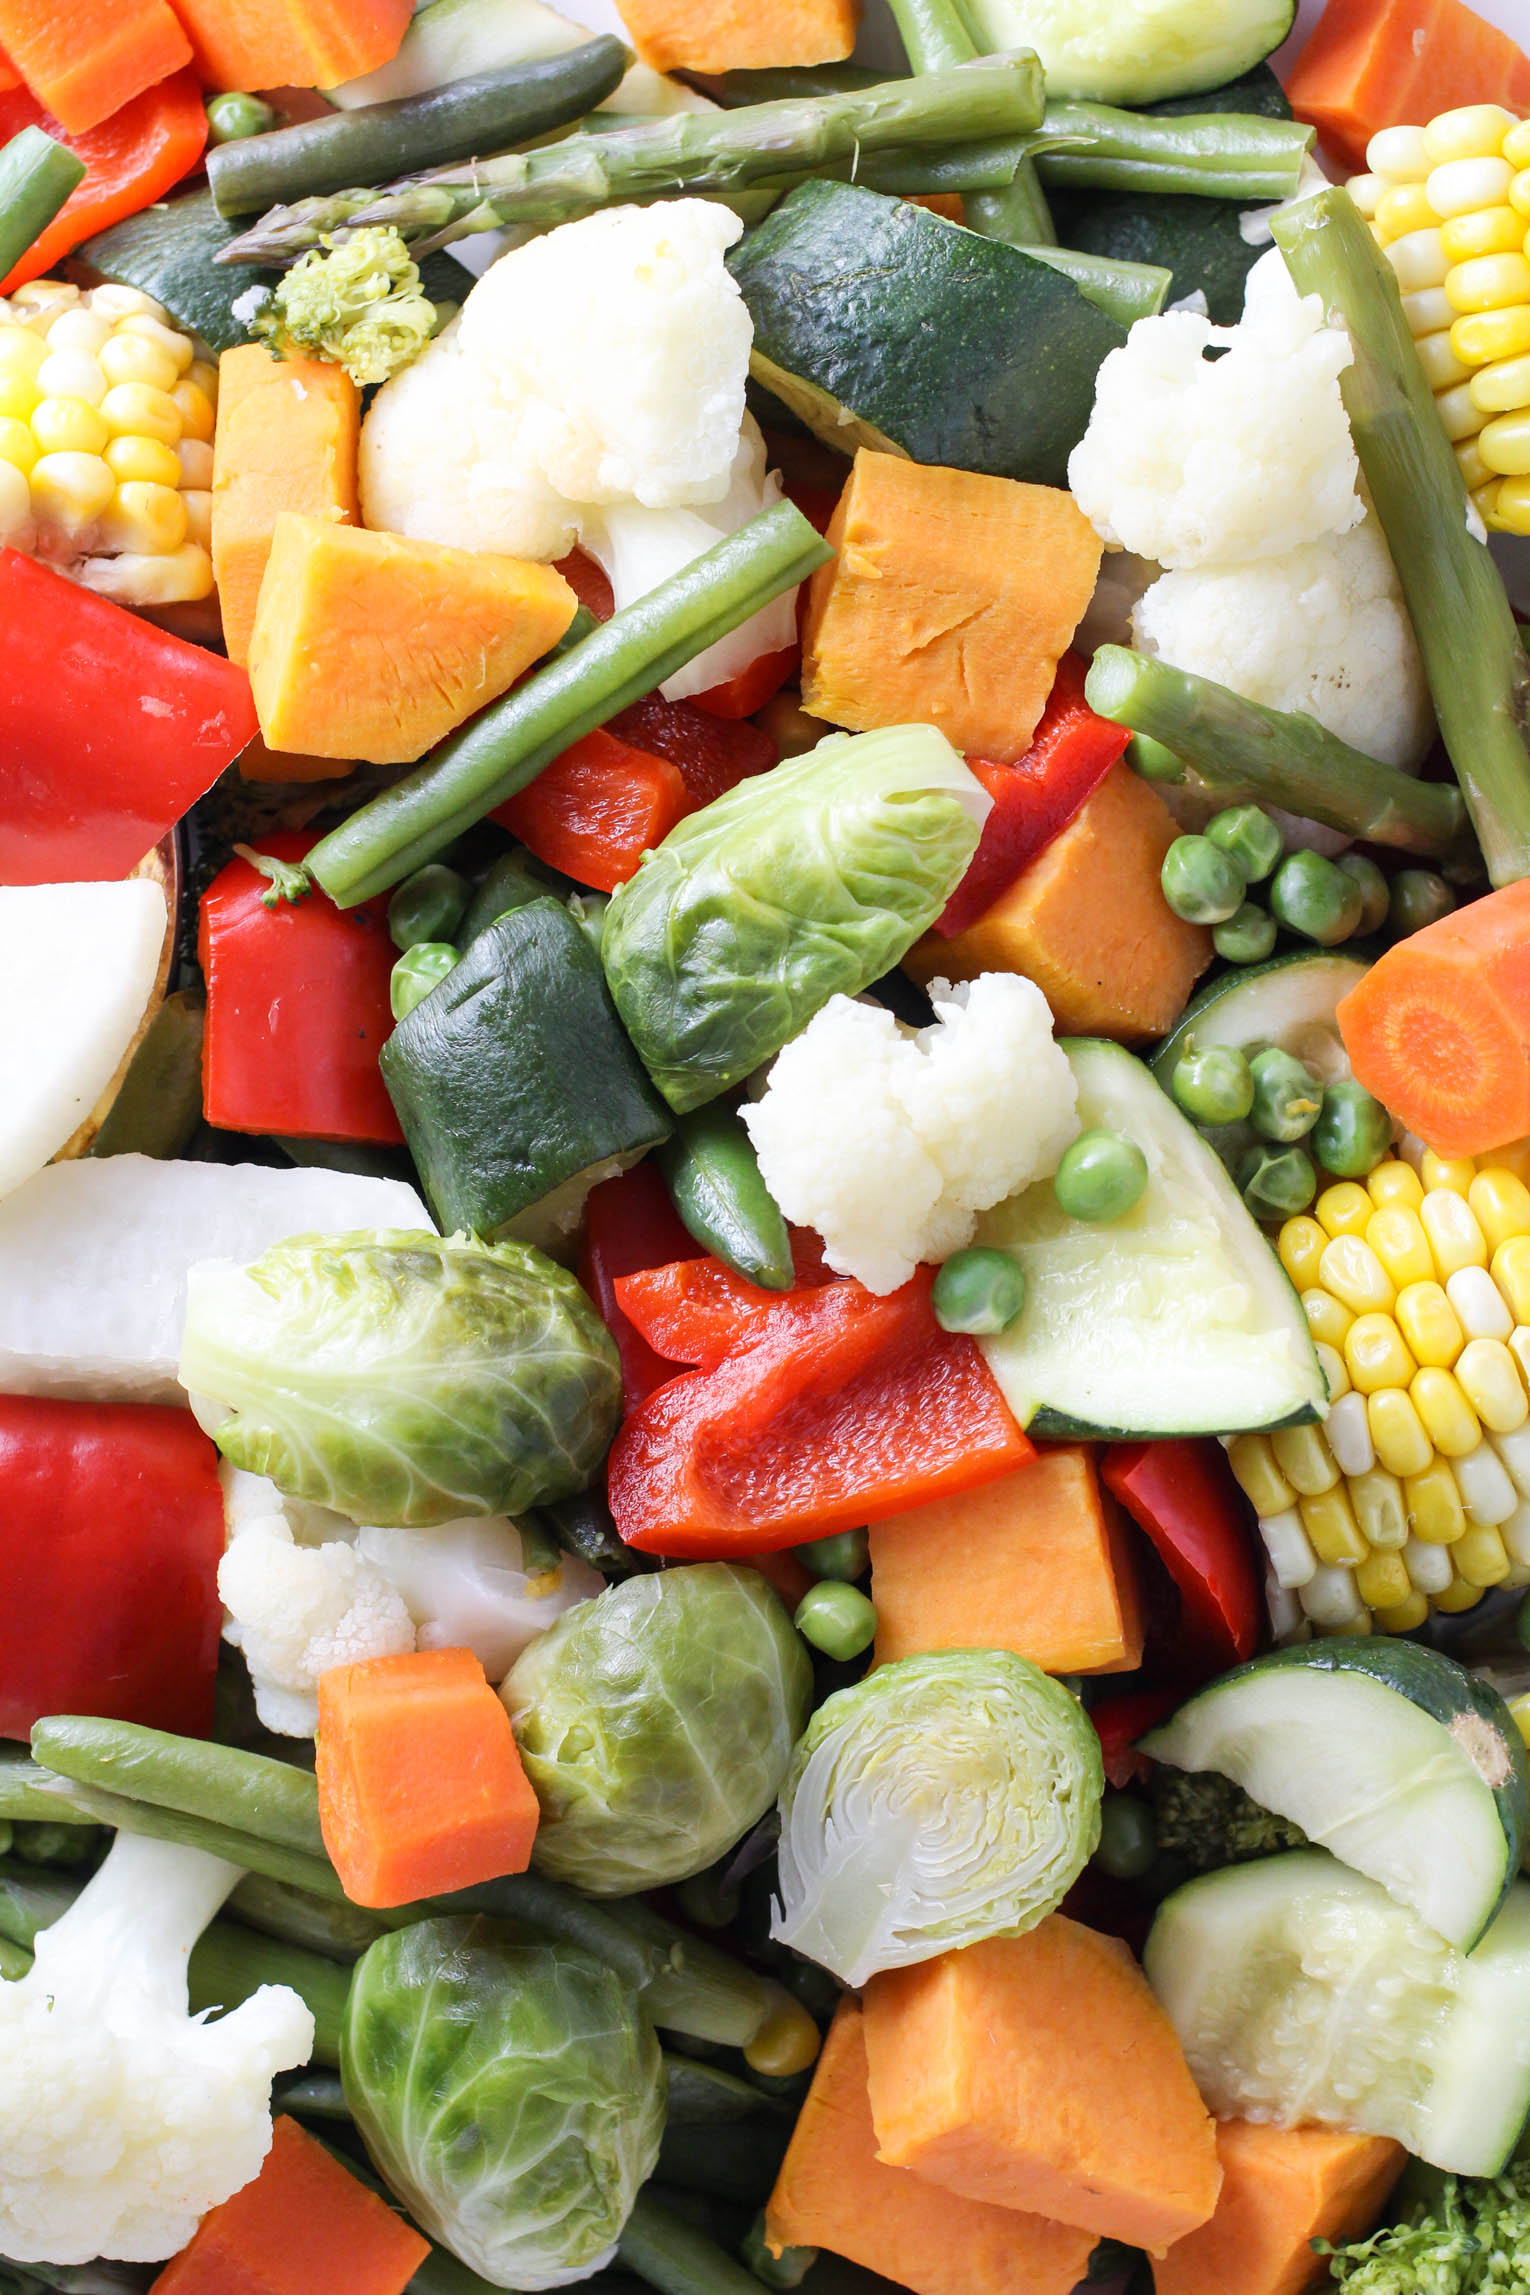 Mixed steamed vegetables.